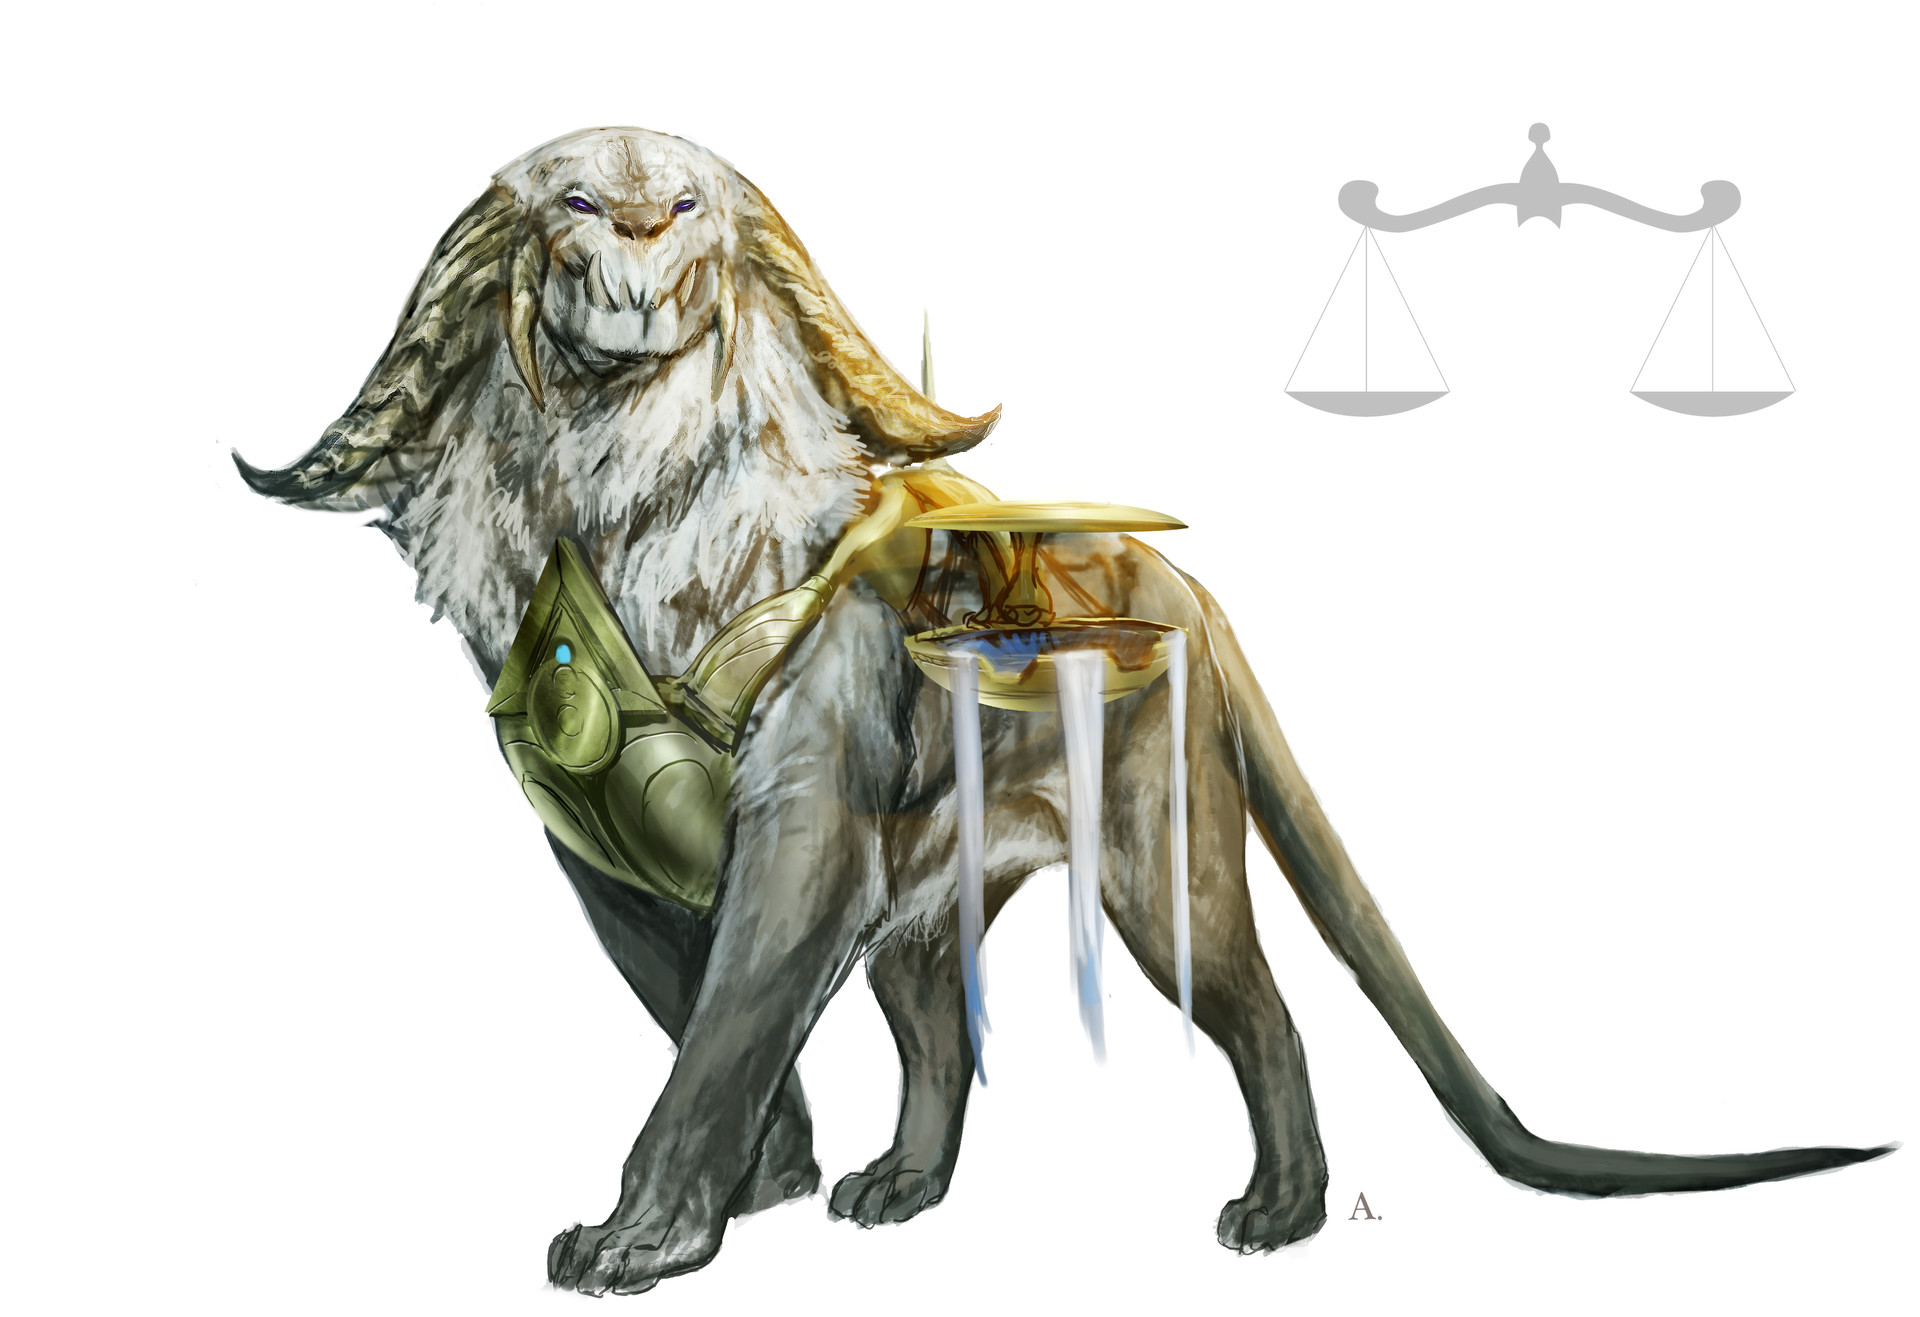 Aleksi briclot magic hook concept azorius creature lion giant 01